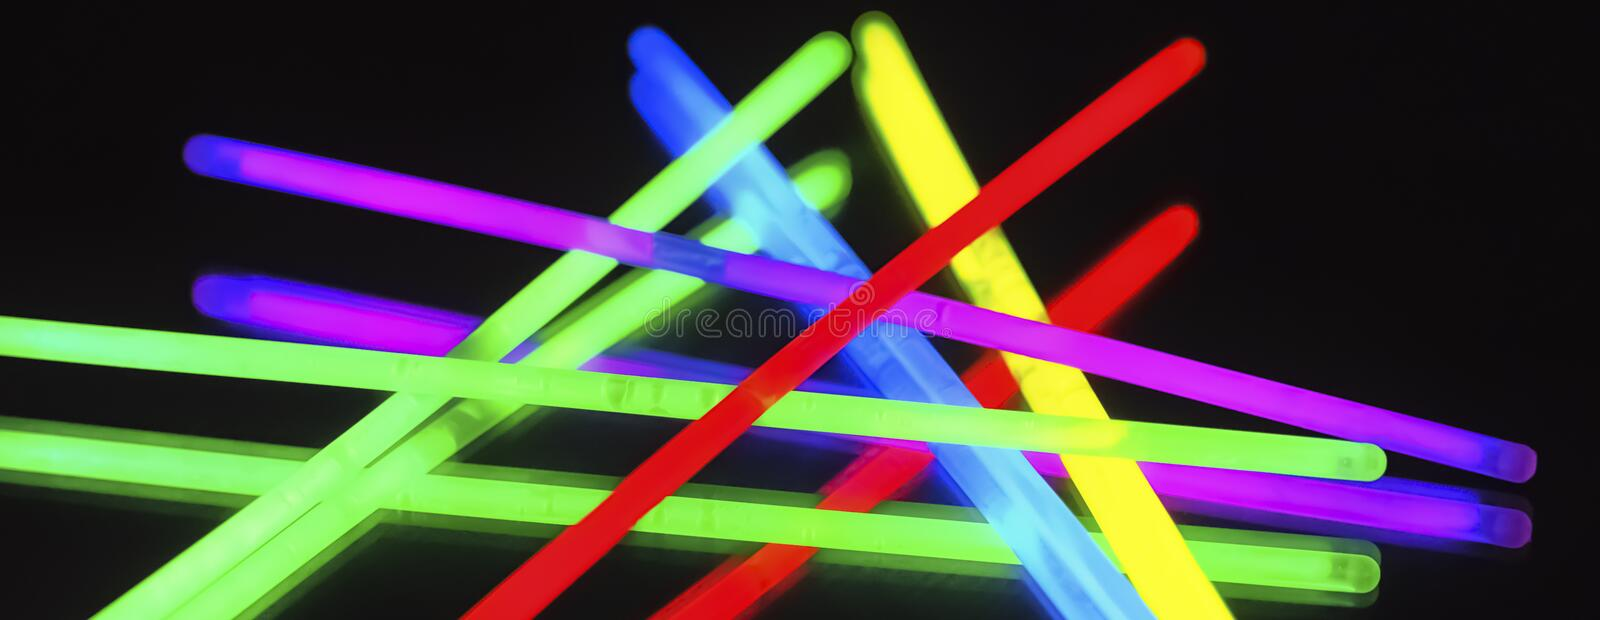 Multicolor fluorescent chem light neon black background. Variation of multicolored colorful colored fluorescent chem light neon tube with reflection on mirror stock images